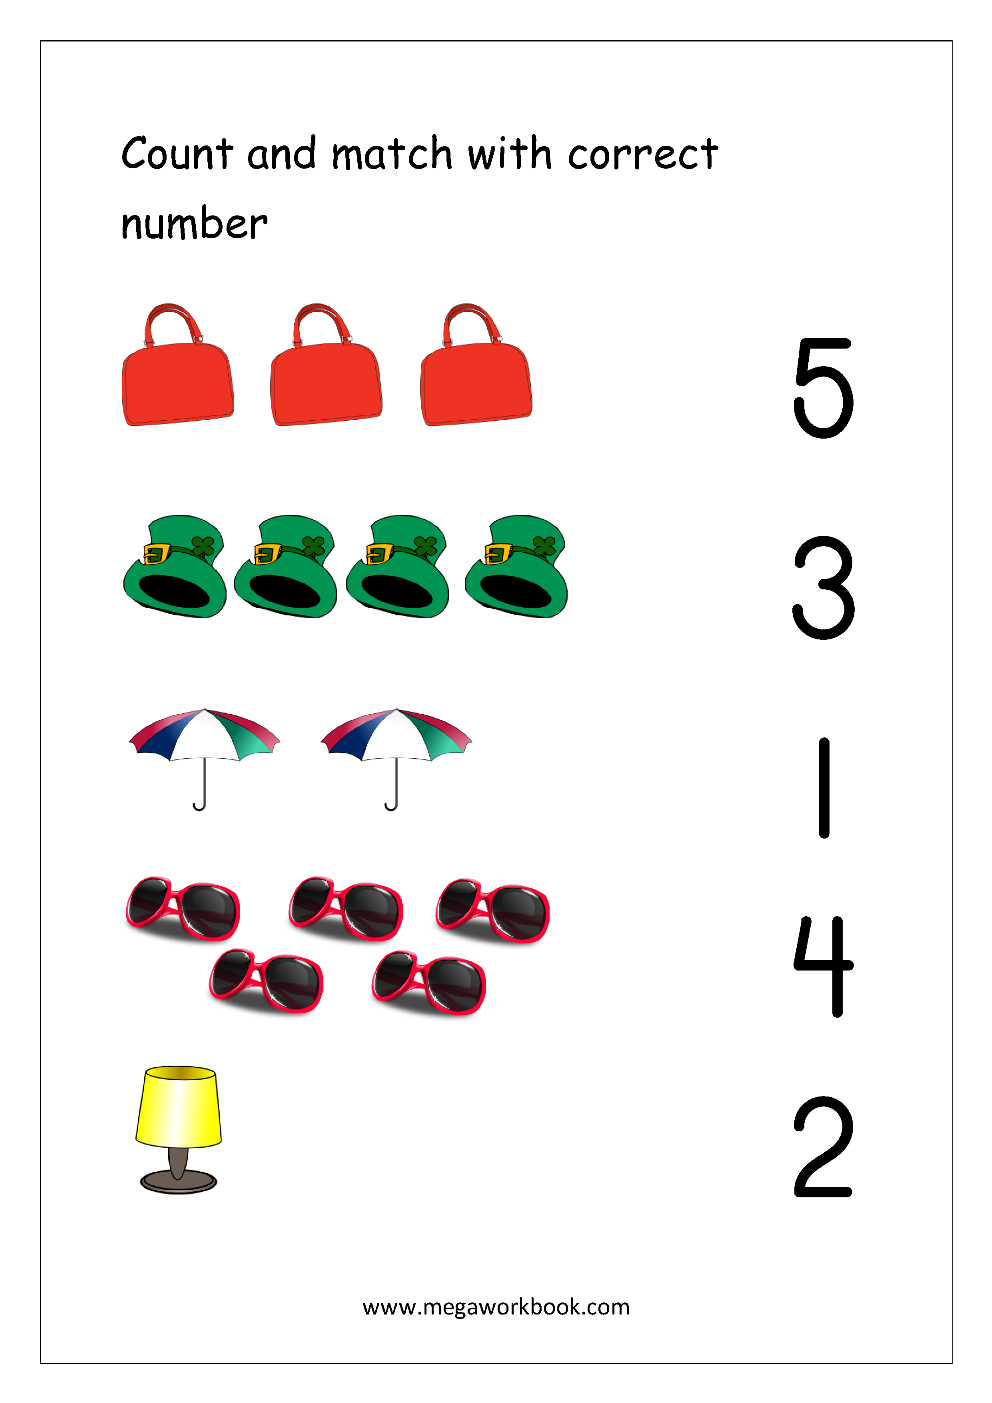 Free Printable Number Matching Worksheets For Kindergarten And - Free Printable Mirrored Numbers